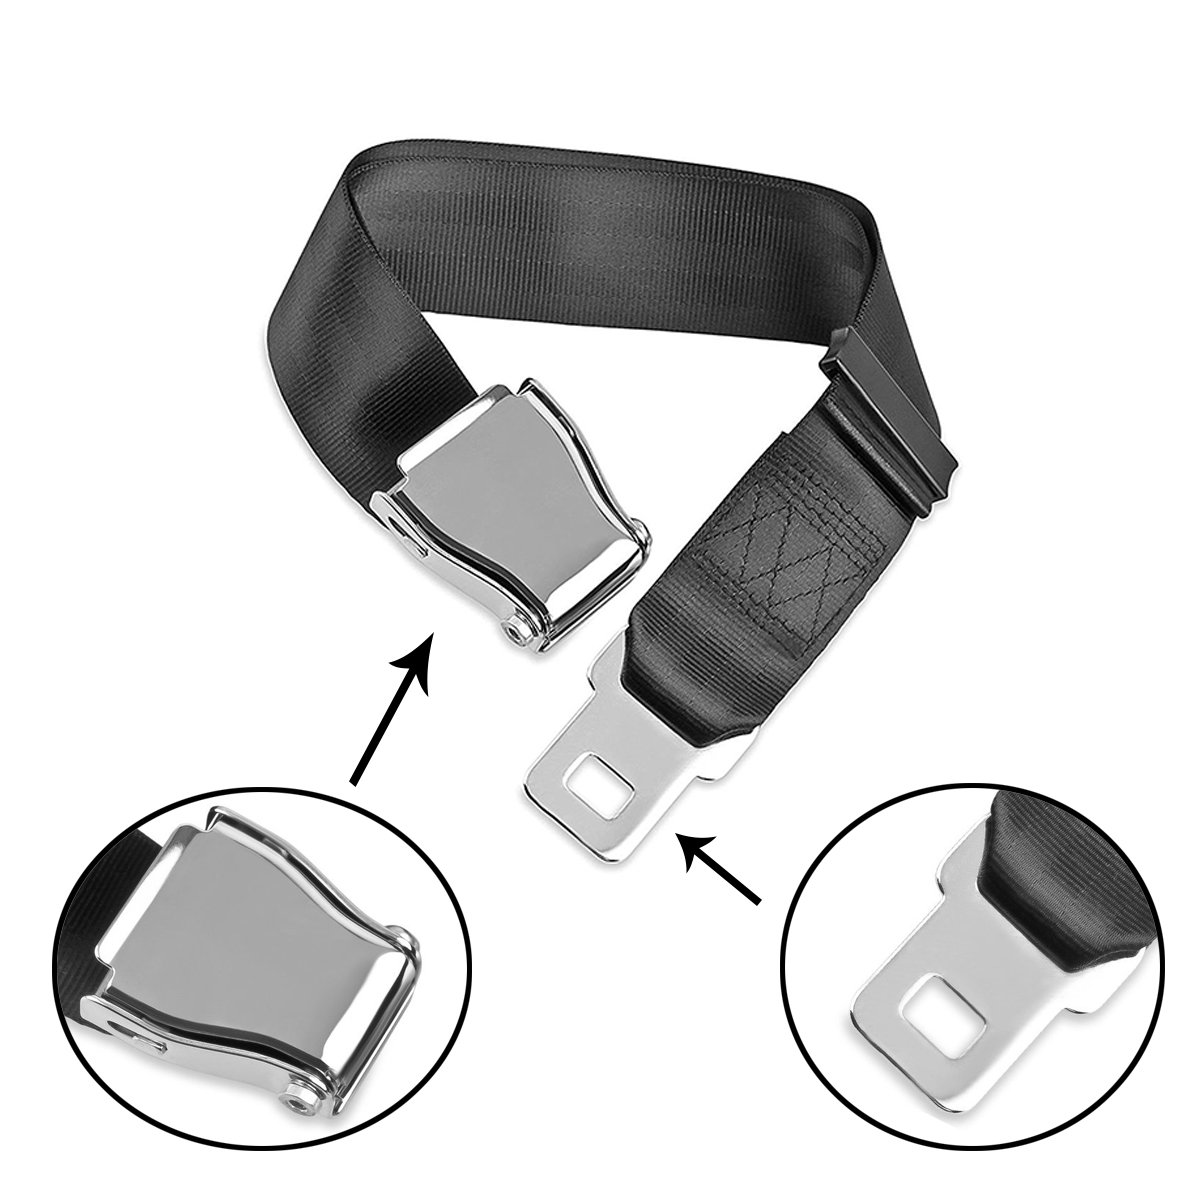 Ansblue Adjustable Airplane Seat Belt Extender Suitable for Most Airlines (Except Southwest Airlines) Protect Your Safety Bring You a Comfortable Trip- Black